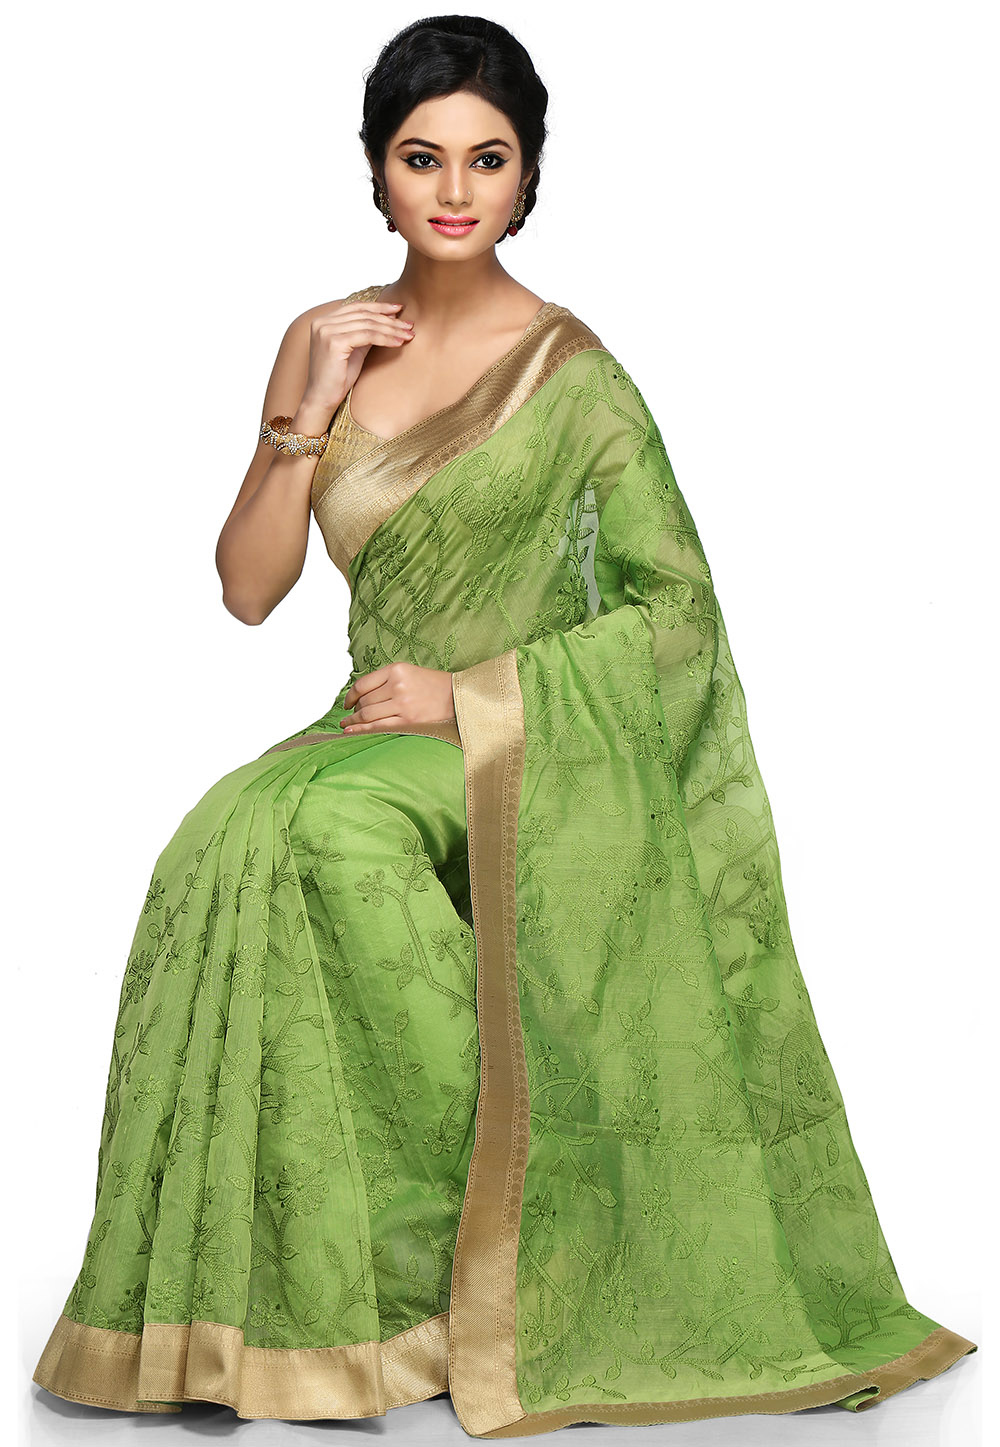 A Green Saree. (Image: Utsavfashion.com)